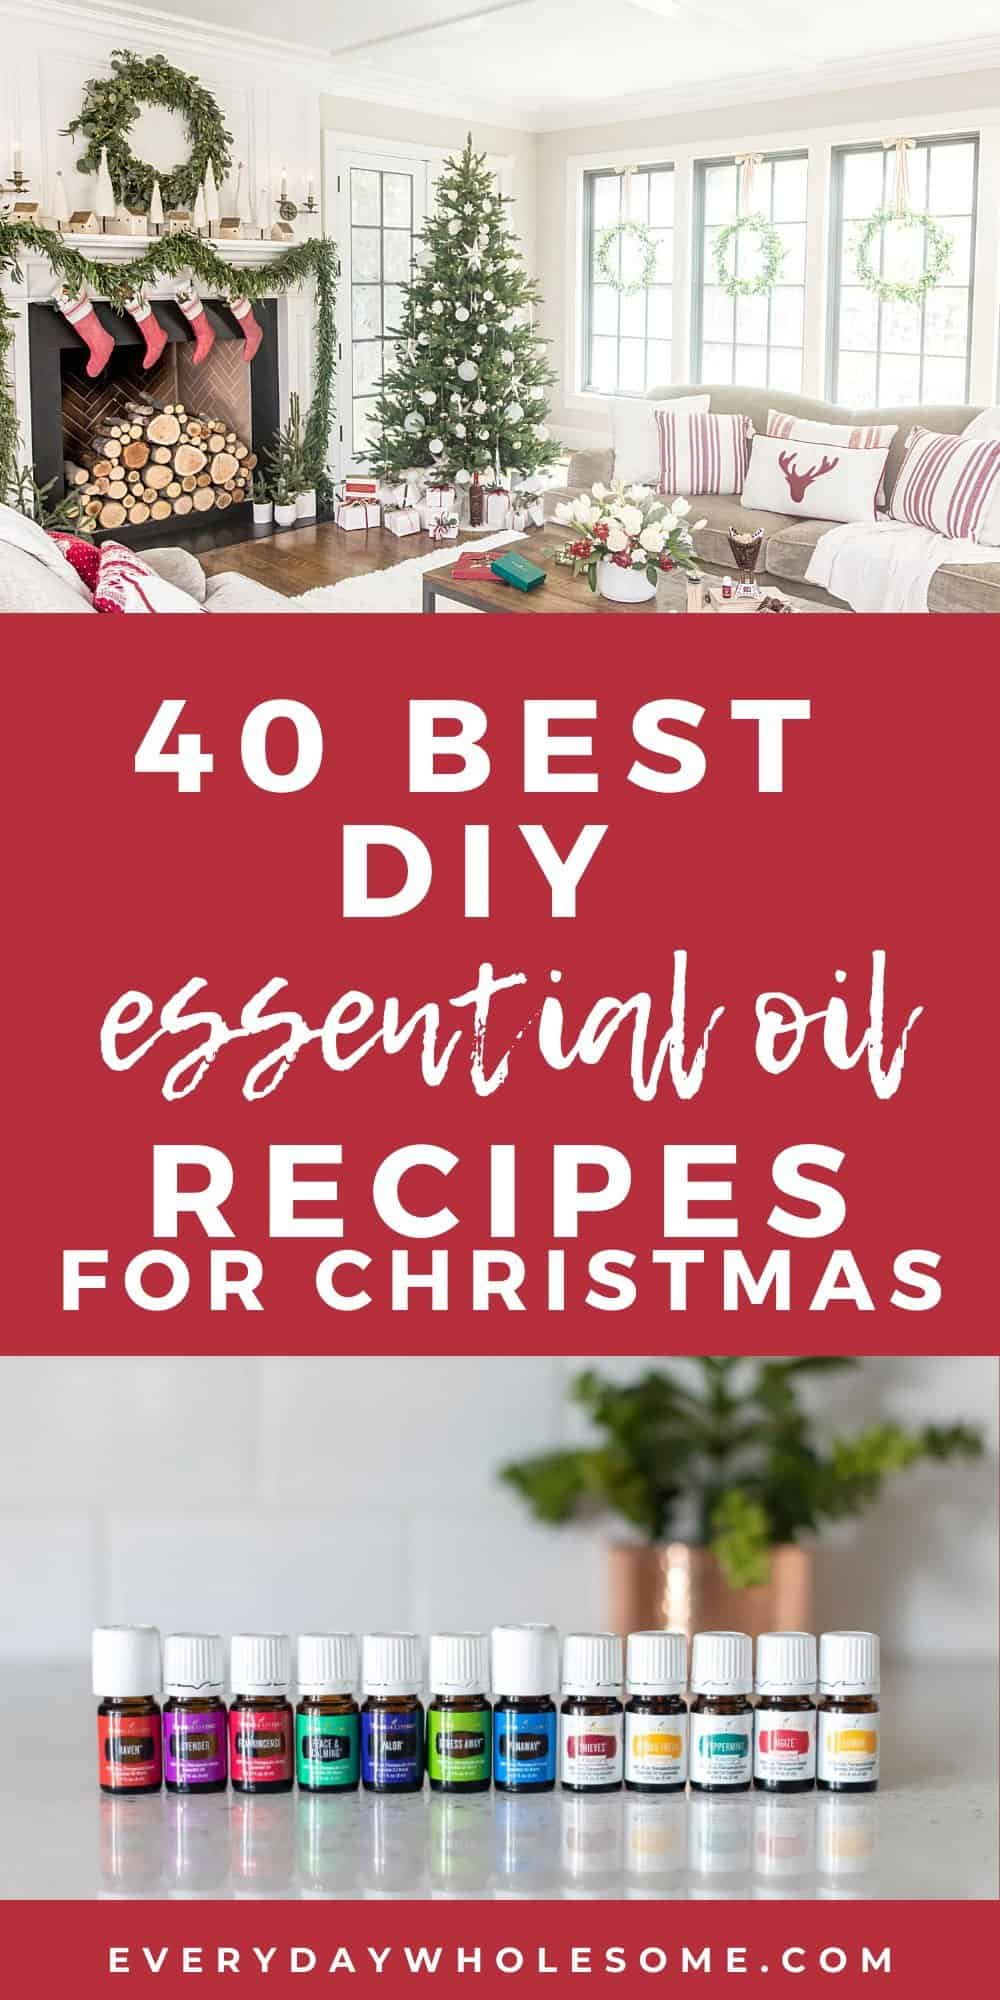 40 best diy essential oil recipes for christmas pin